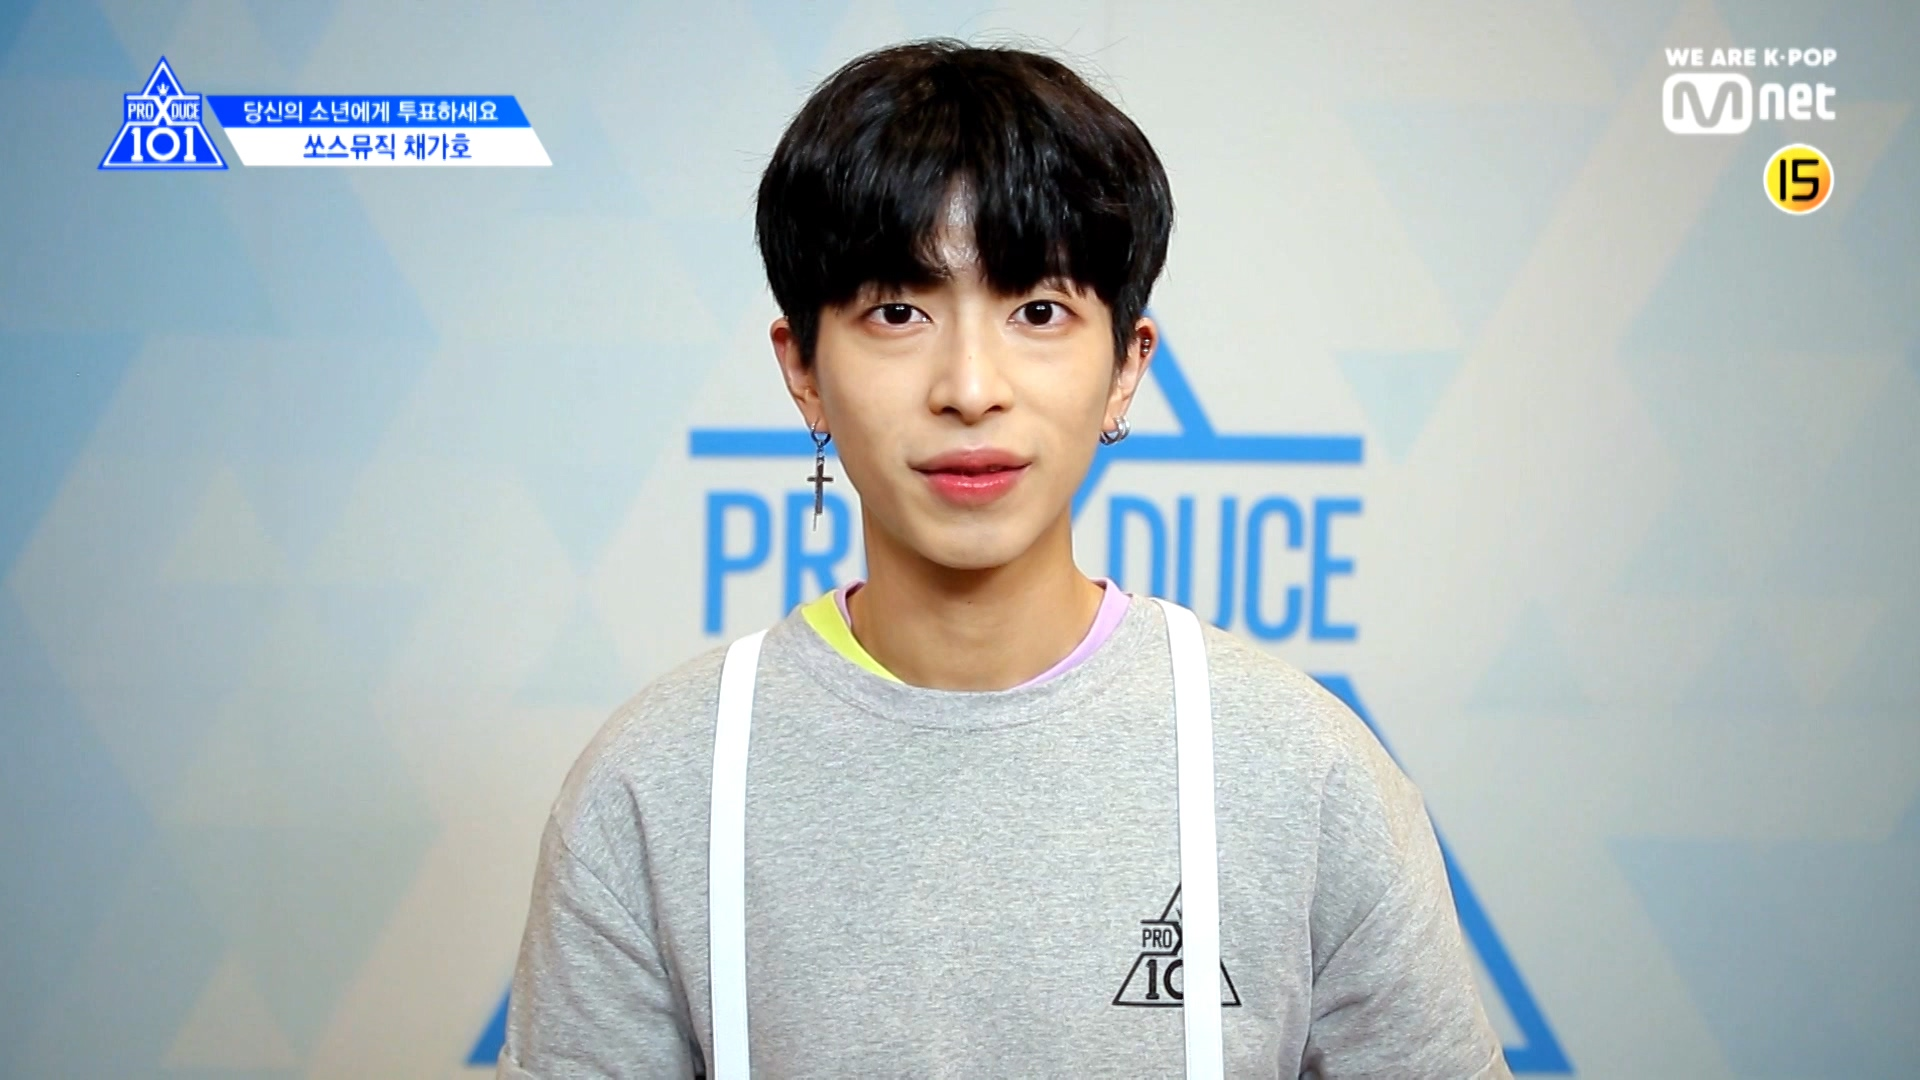 [PRODUCE X 101] EYE CONTACT CHALLENGE l TSAI CHIA HAO(SOURCE MUSIC)